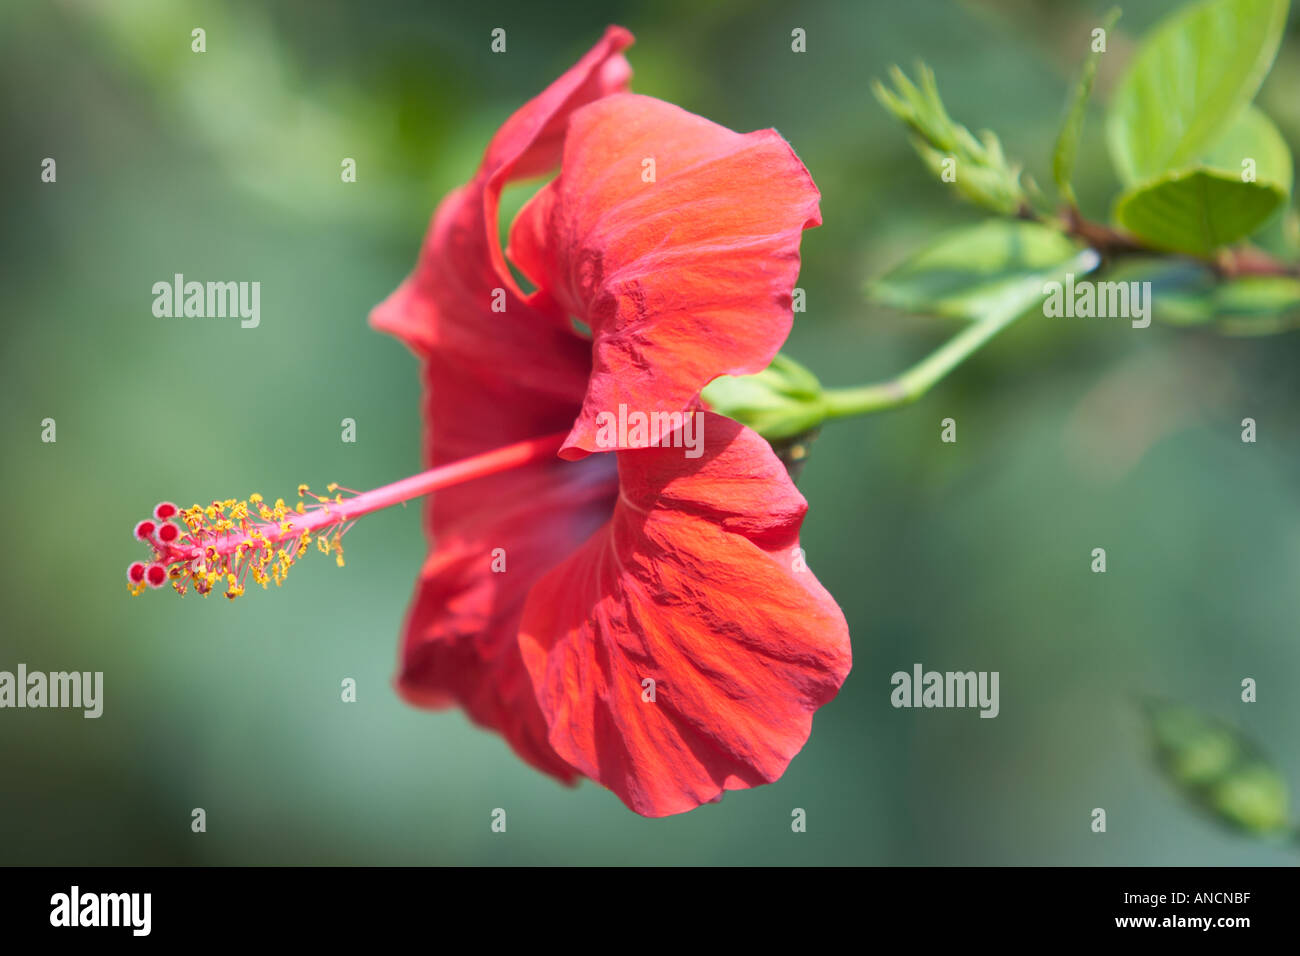 Red hibiscus flower scientific name hibiscus rosa sinensis corfu red hibiscus flower scientific name hibiscus rosa sinensis corfu island greece izmirmasajfo Image collections